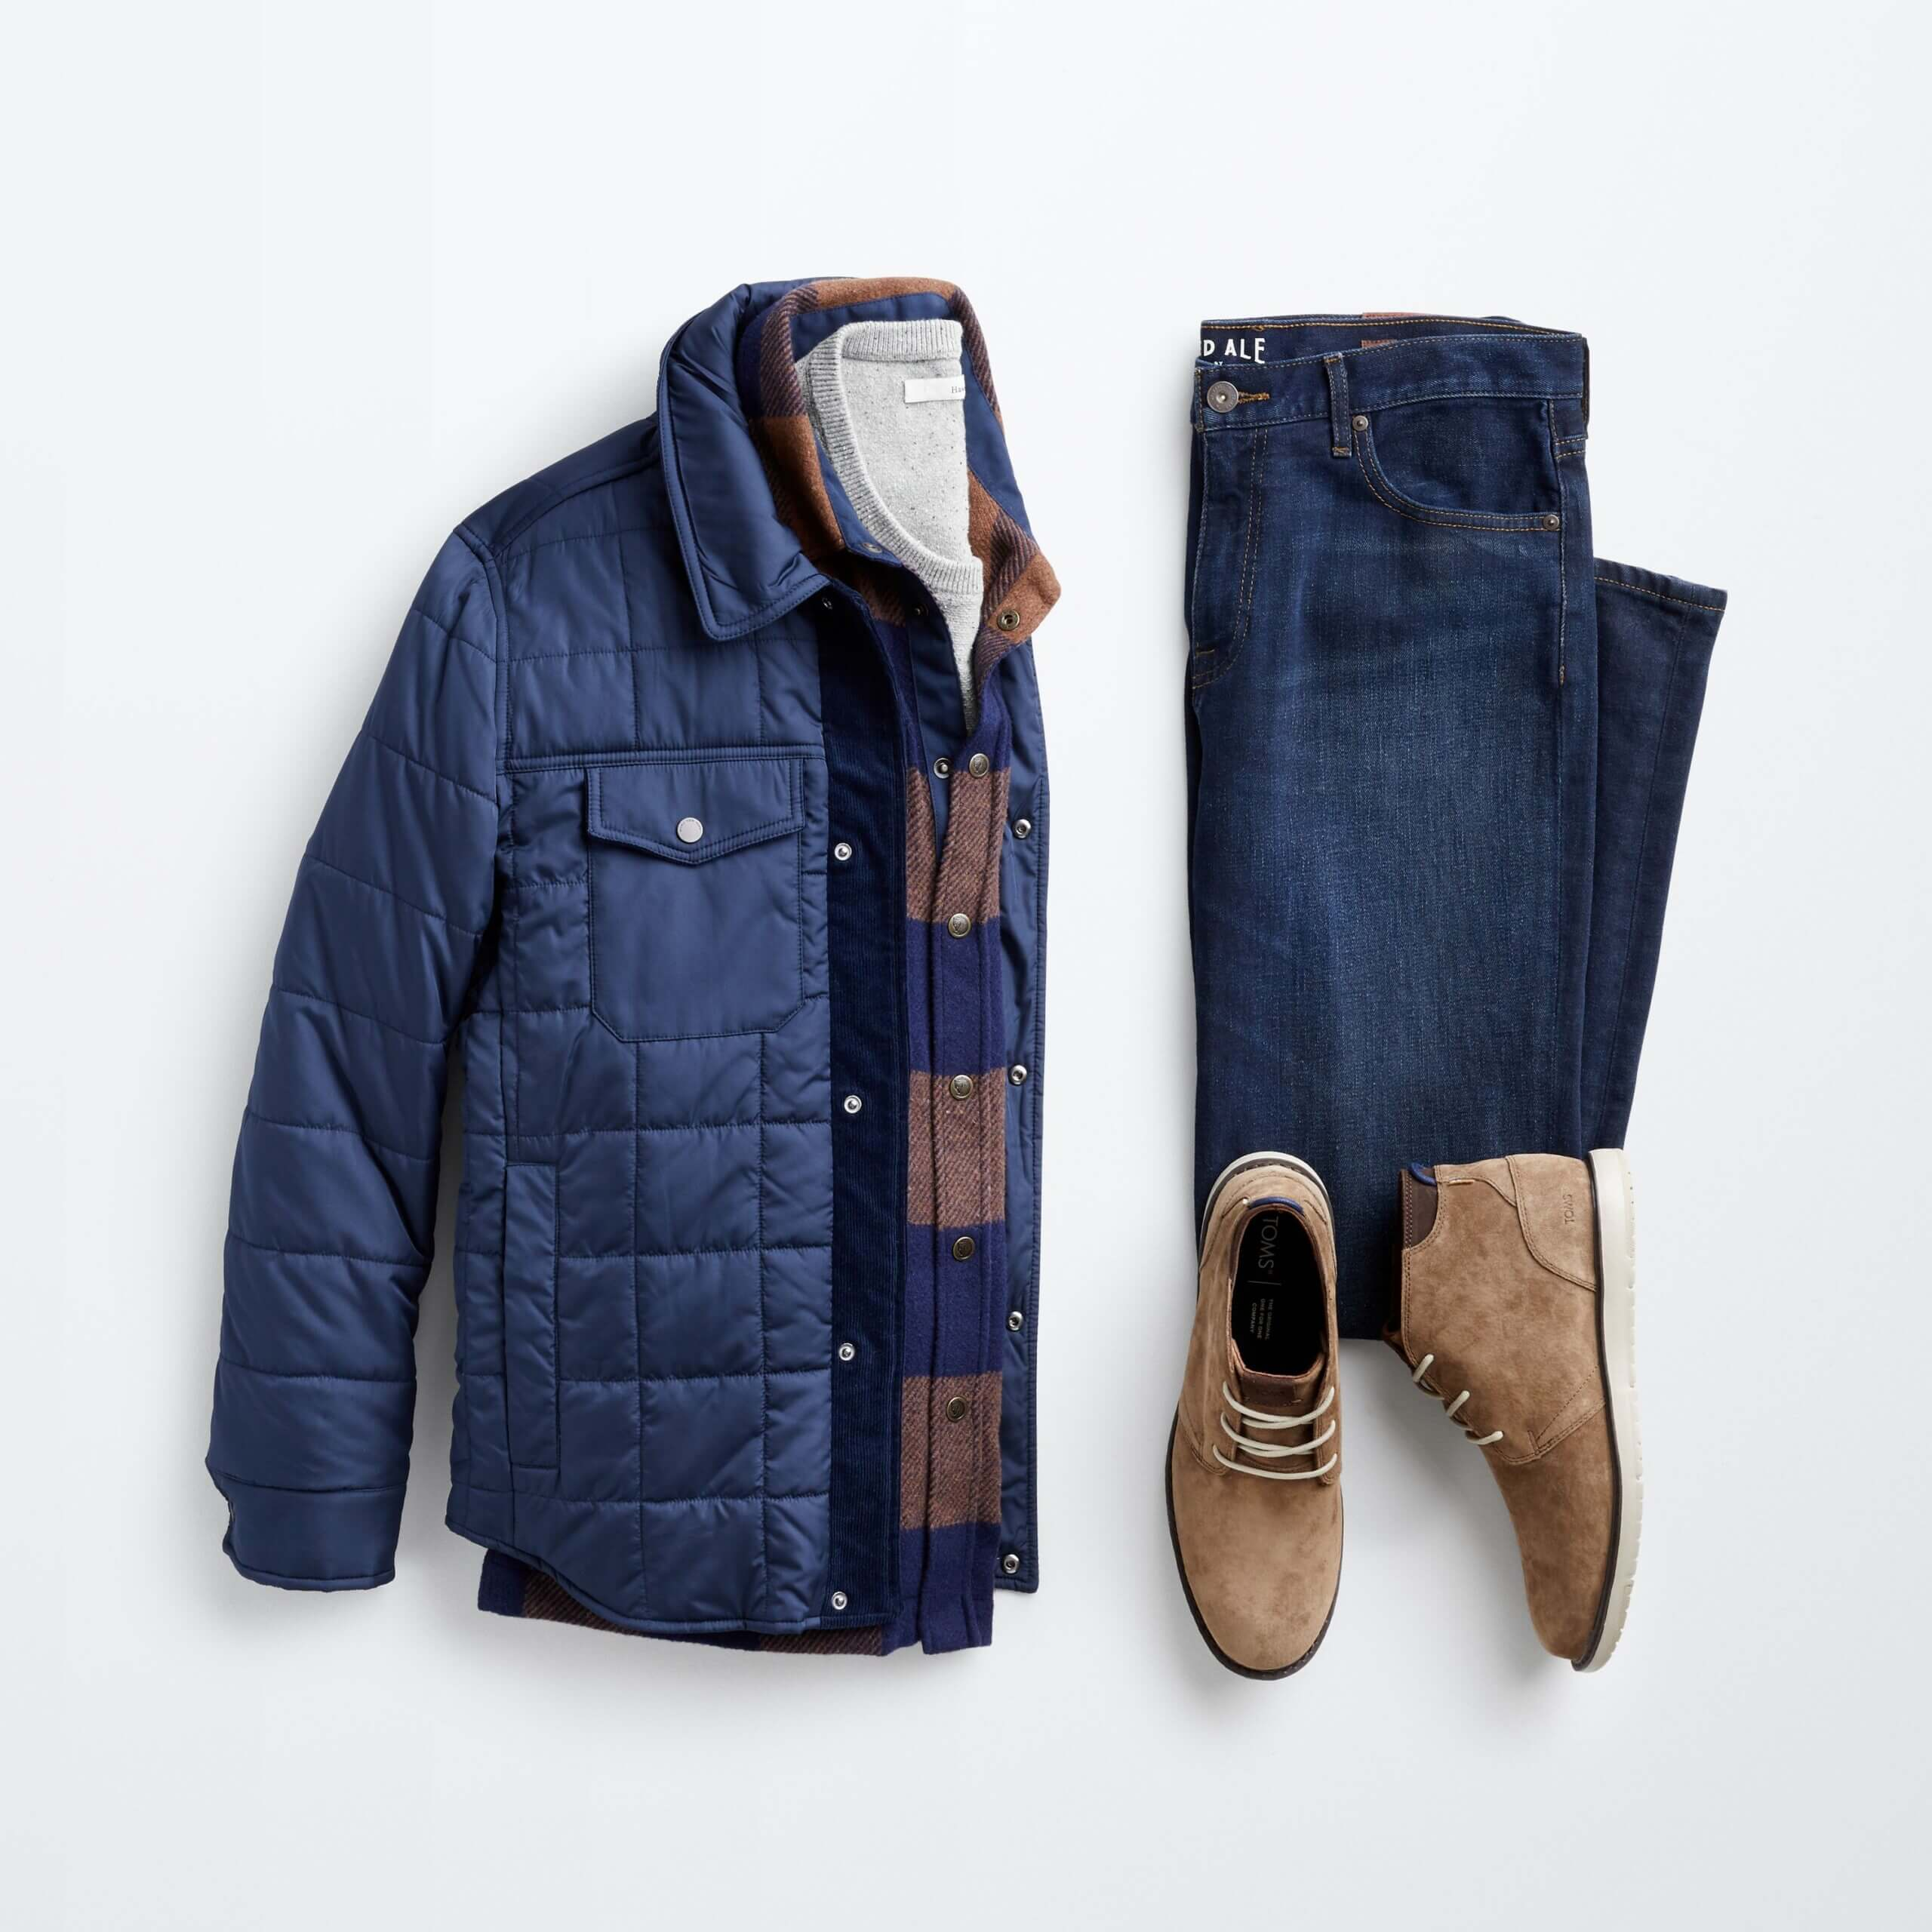 Stitch Fix men's outfit laydown featuring blue denim, grey t-shirt, plaid flannel button-up, navy puffer jacket and brown chukkas.